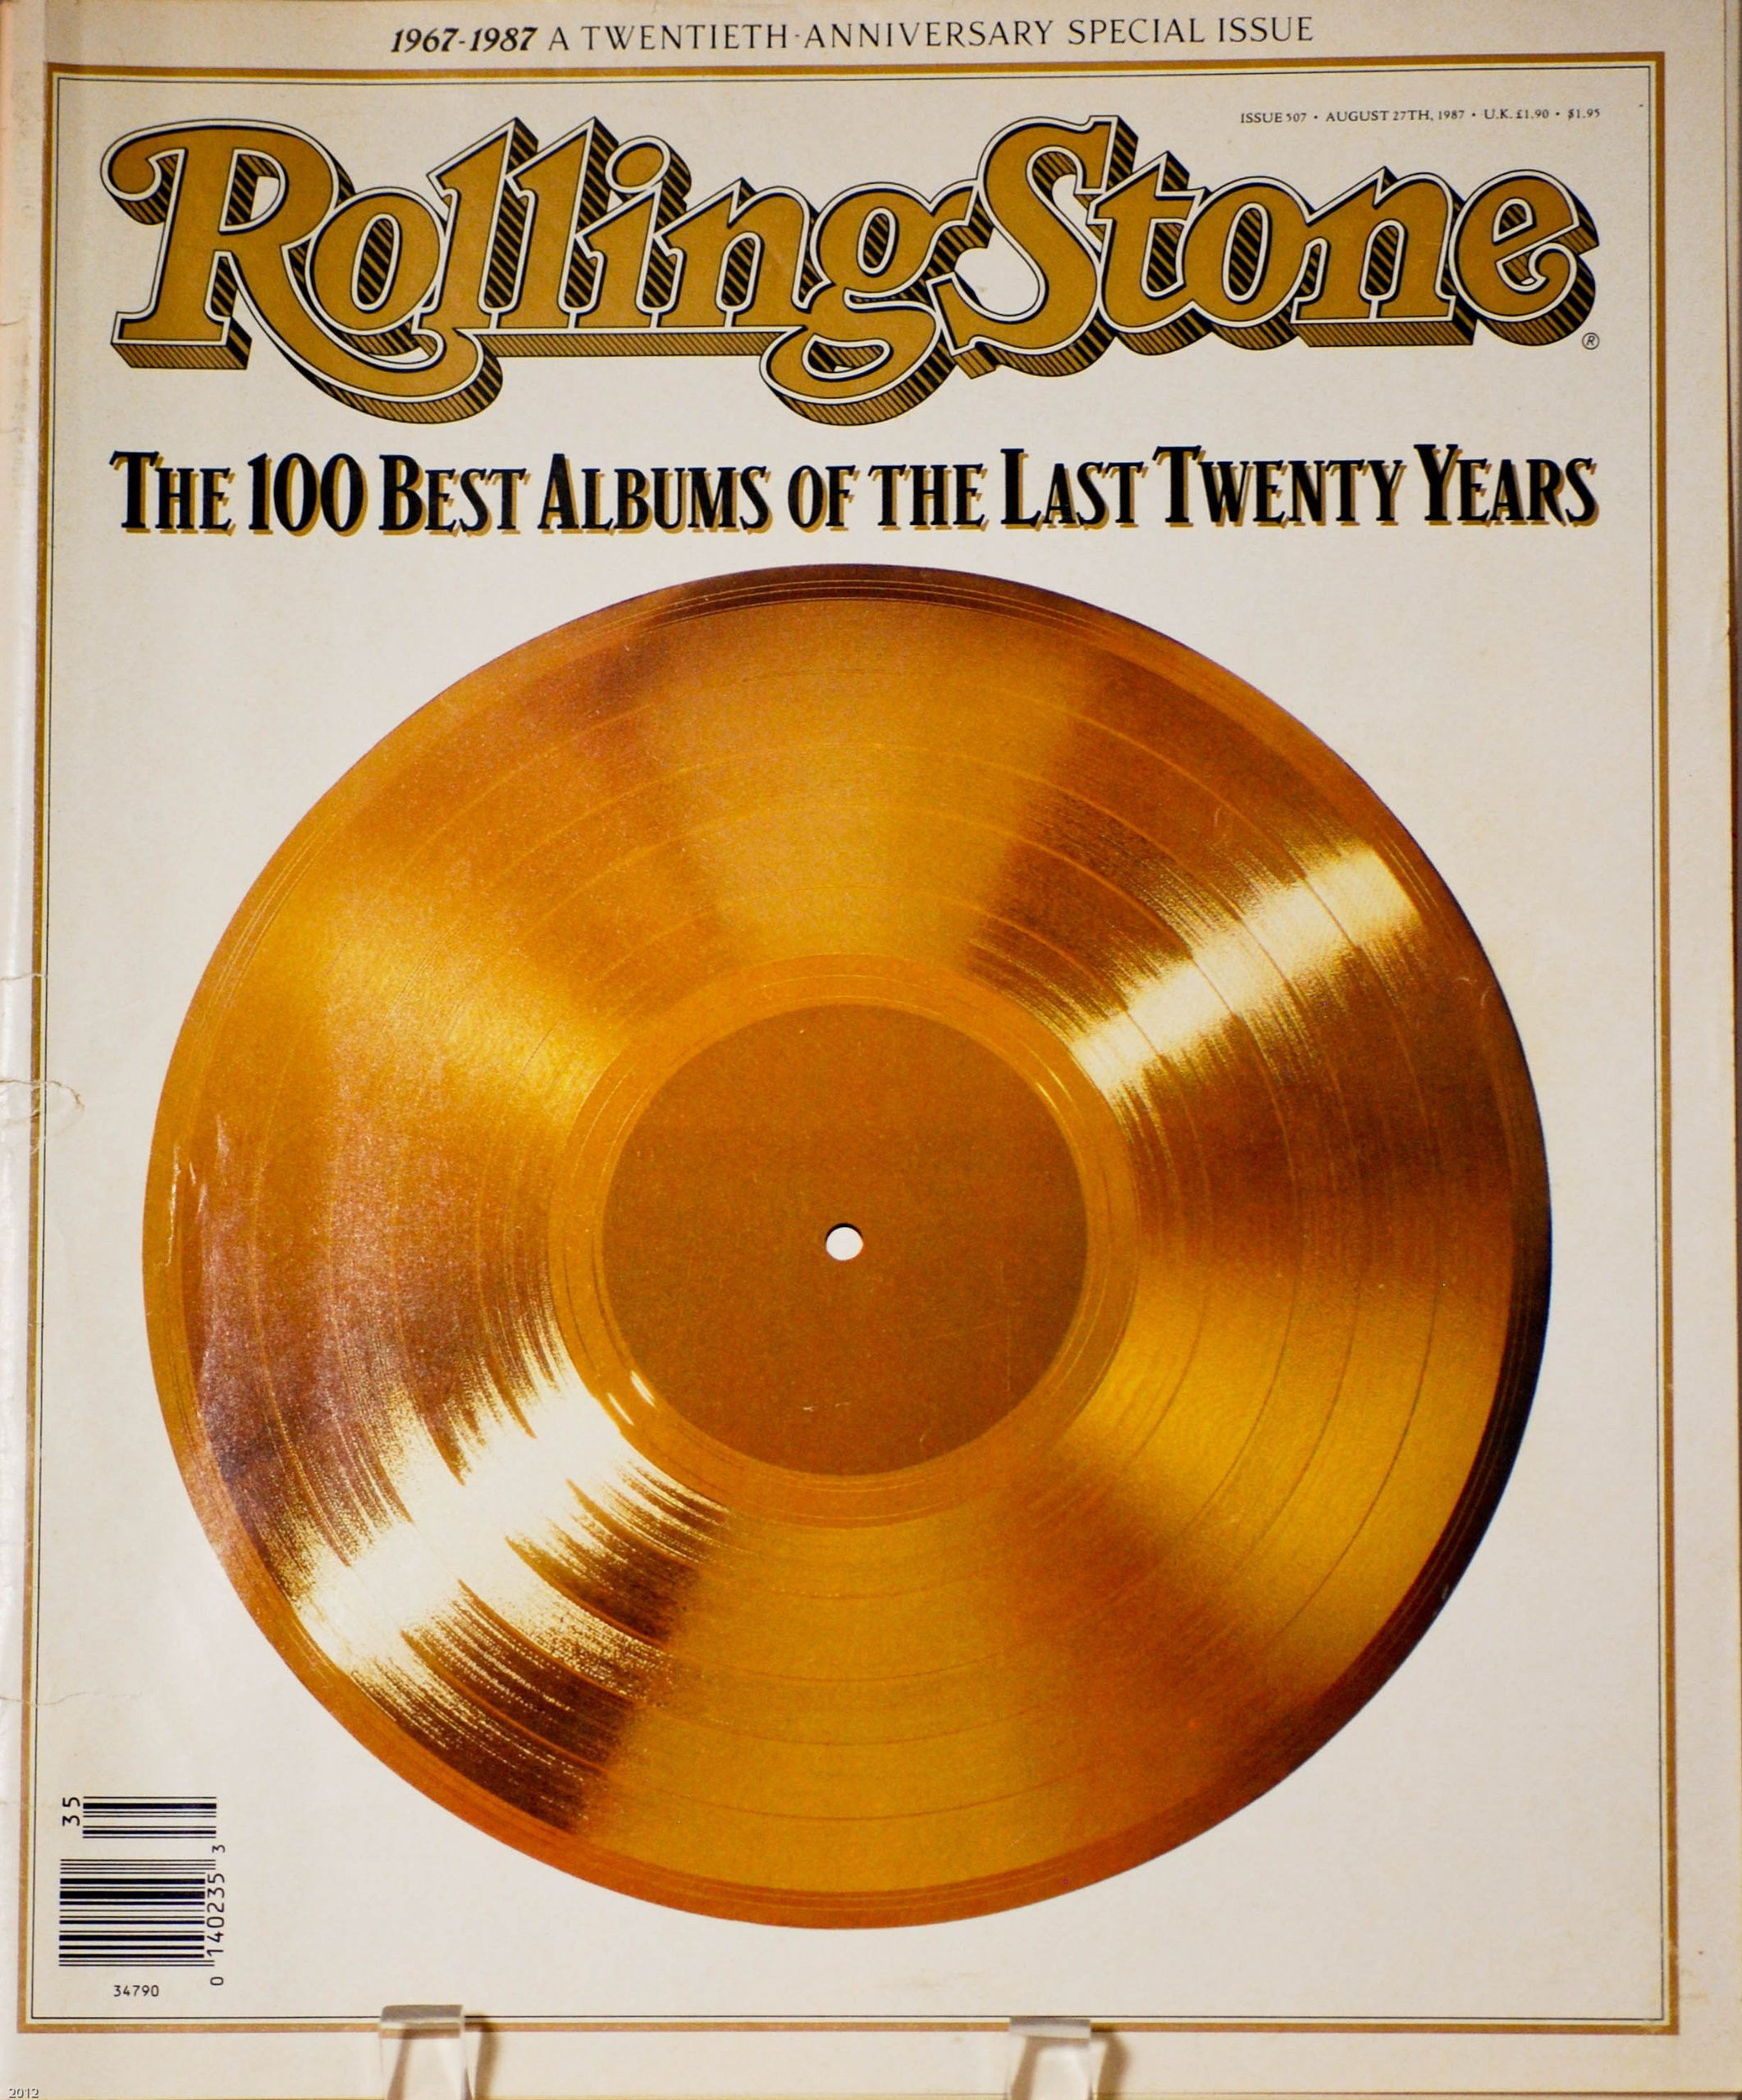 rolling stone magazine 507 august 1987 twentieth anniversary special issue the 100 best albums of the last twenty years